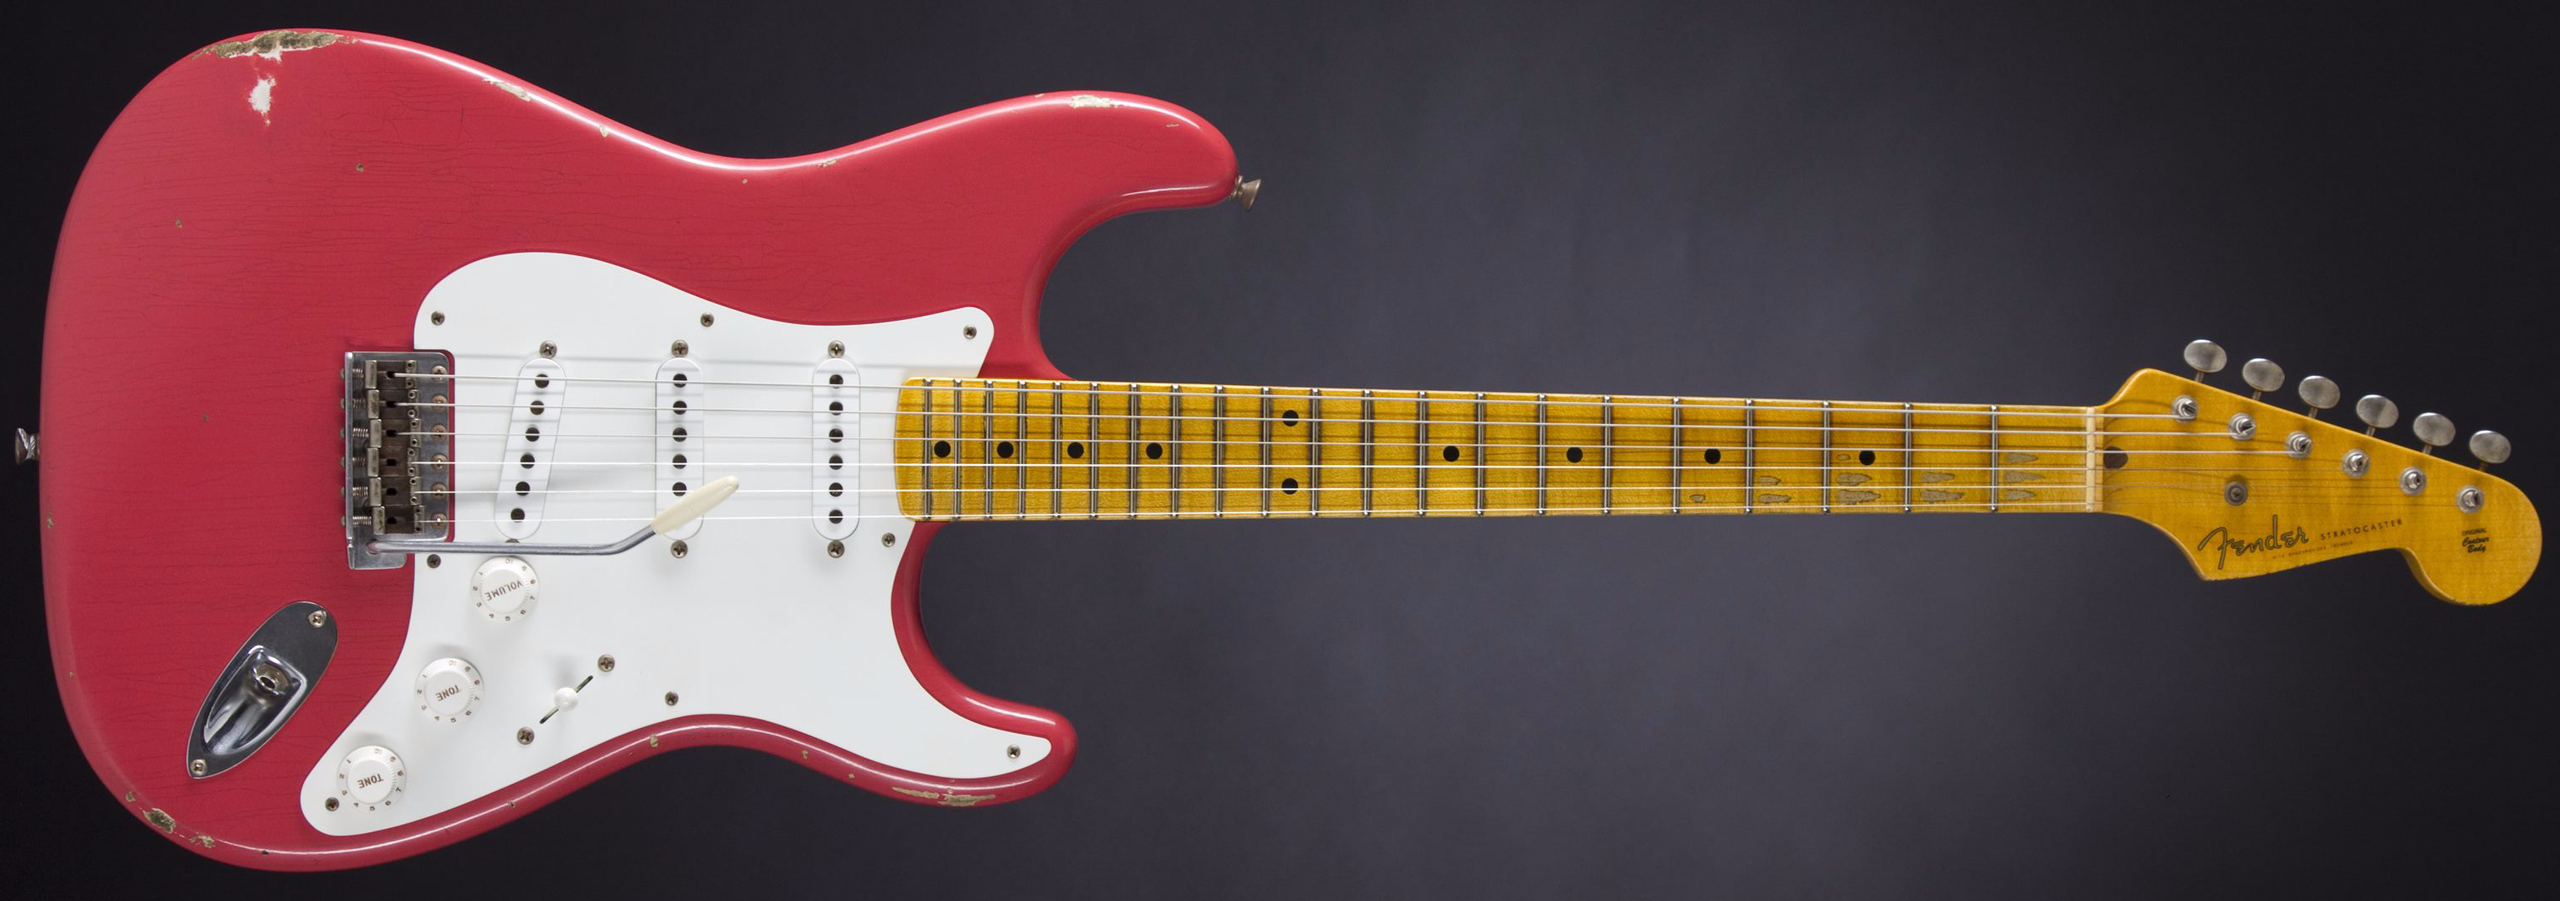 FENDER 1955 Relic Stratocaster Faded Fiesta Red #CZ524995